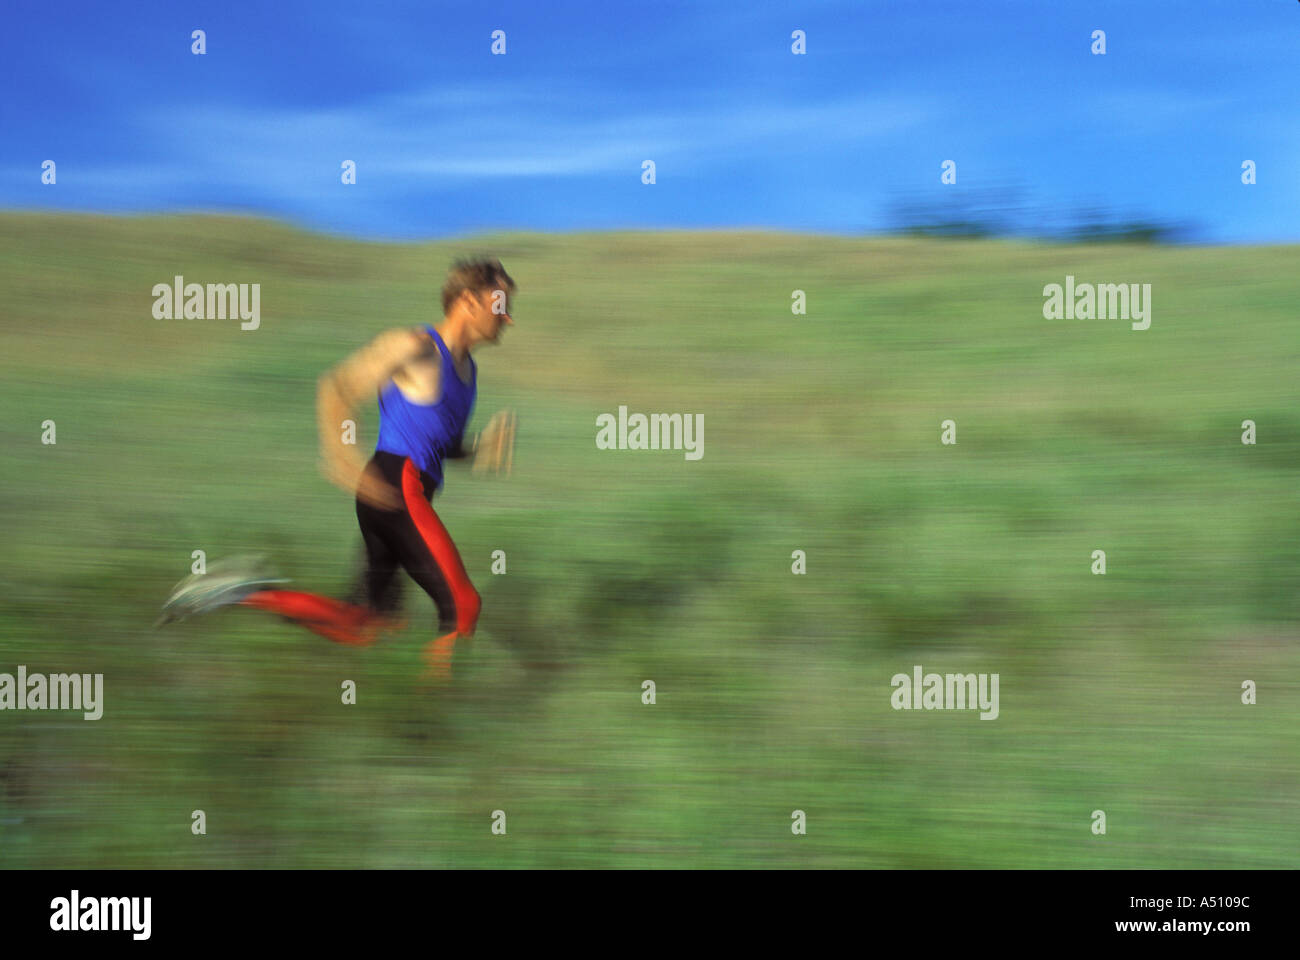 Blurred motion image of man running in field California USA - Stock Image